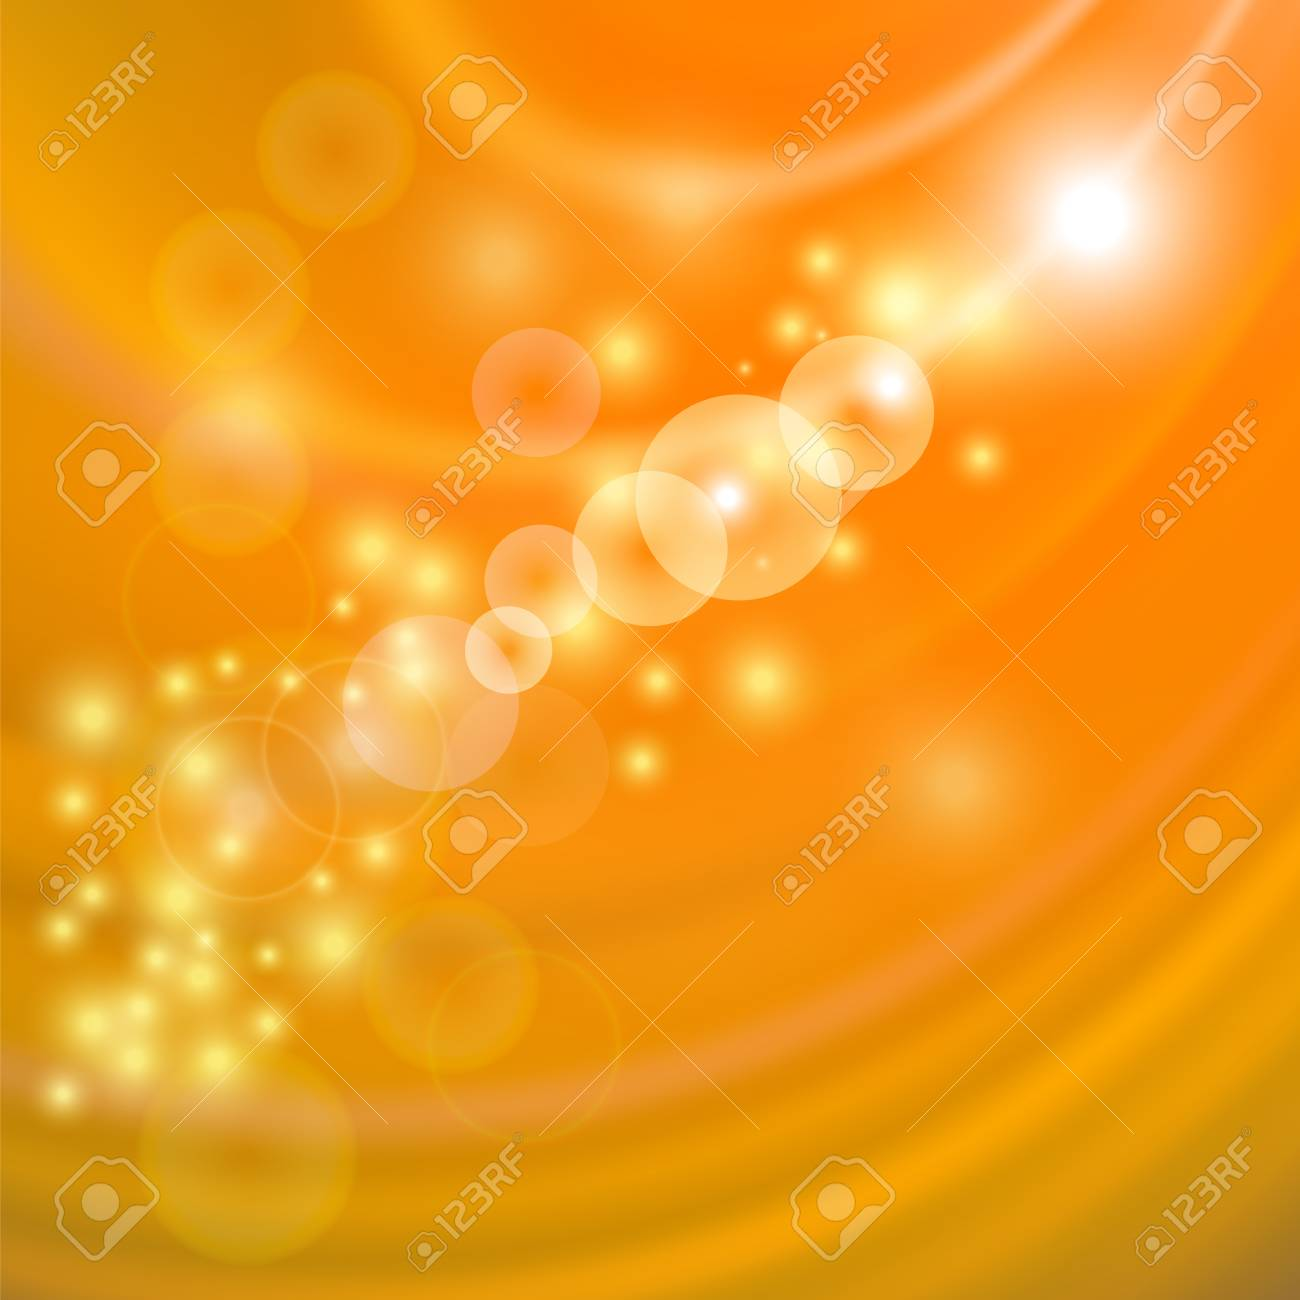 Abstract Light Orange Wave Background Blurred Orange Pattern Stock Photo Picture And Royalty Free Image Image 56478565